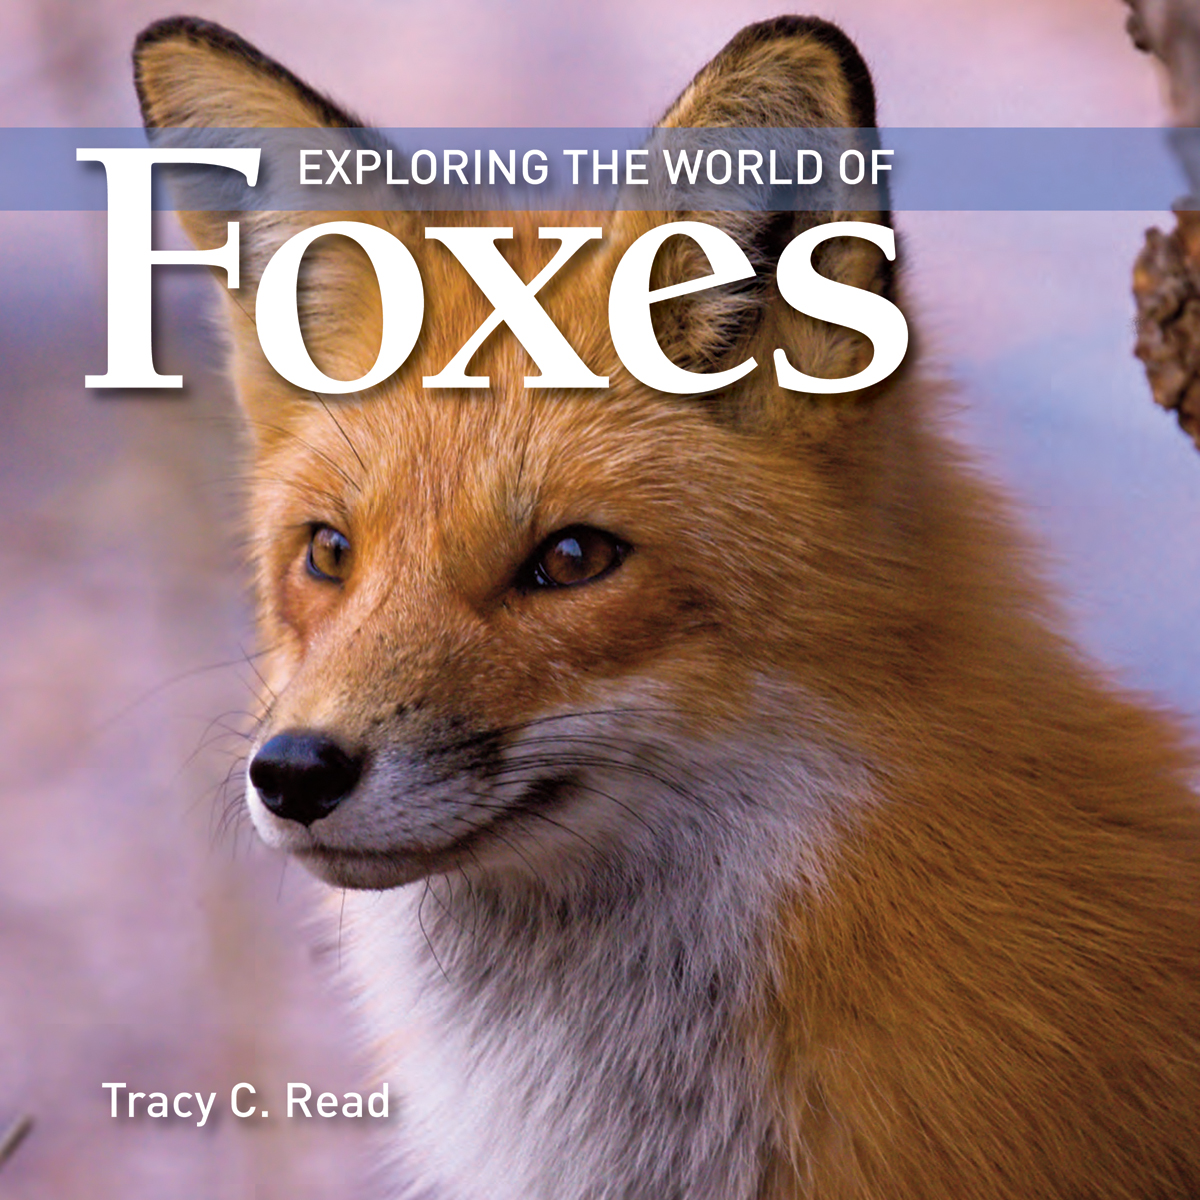 Exploring the World of Foxes | Documentary